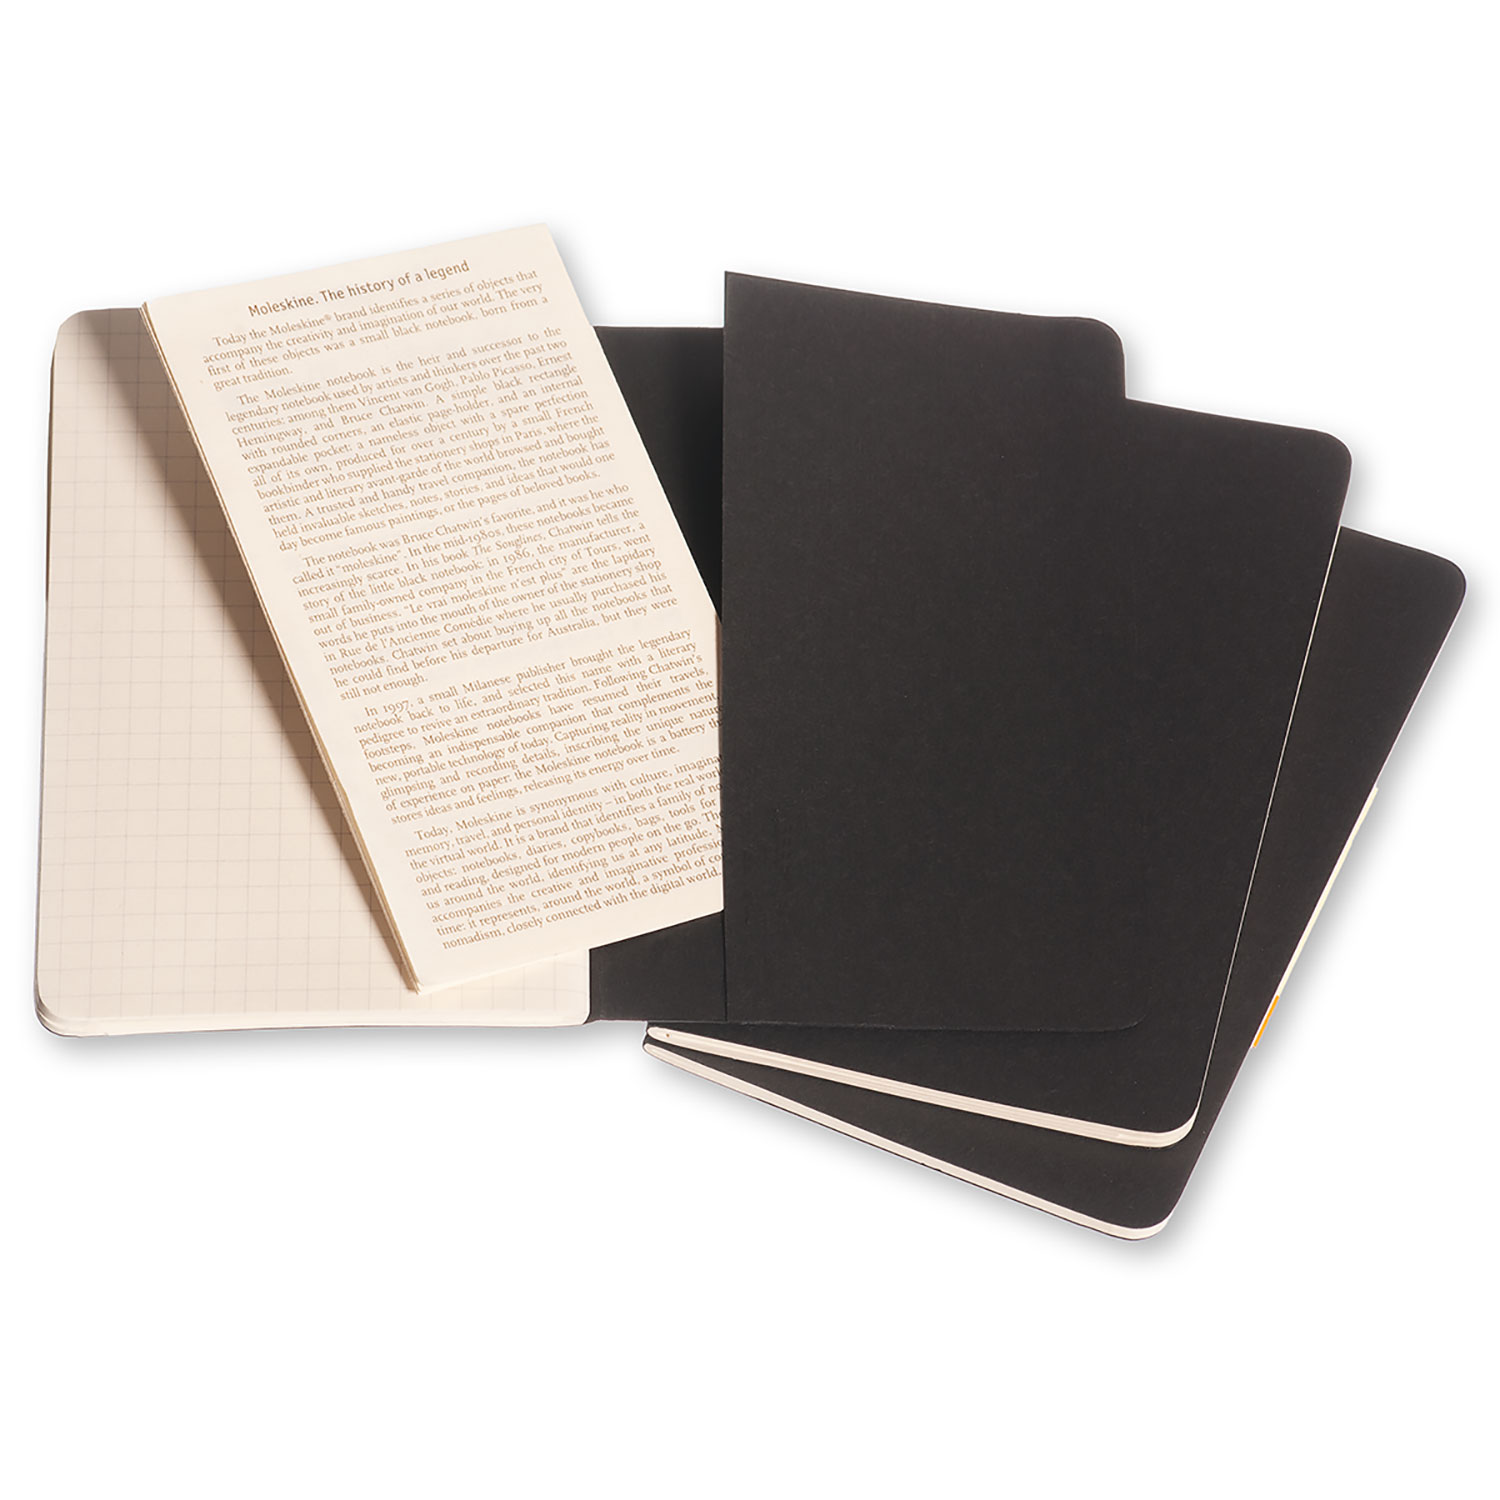 Moleskine Cahier Pocket Squared Black Cover (set of 3)